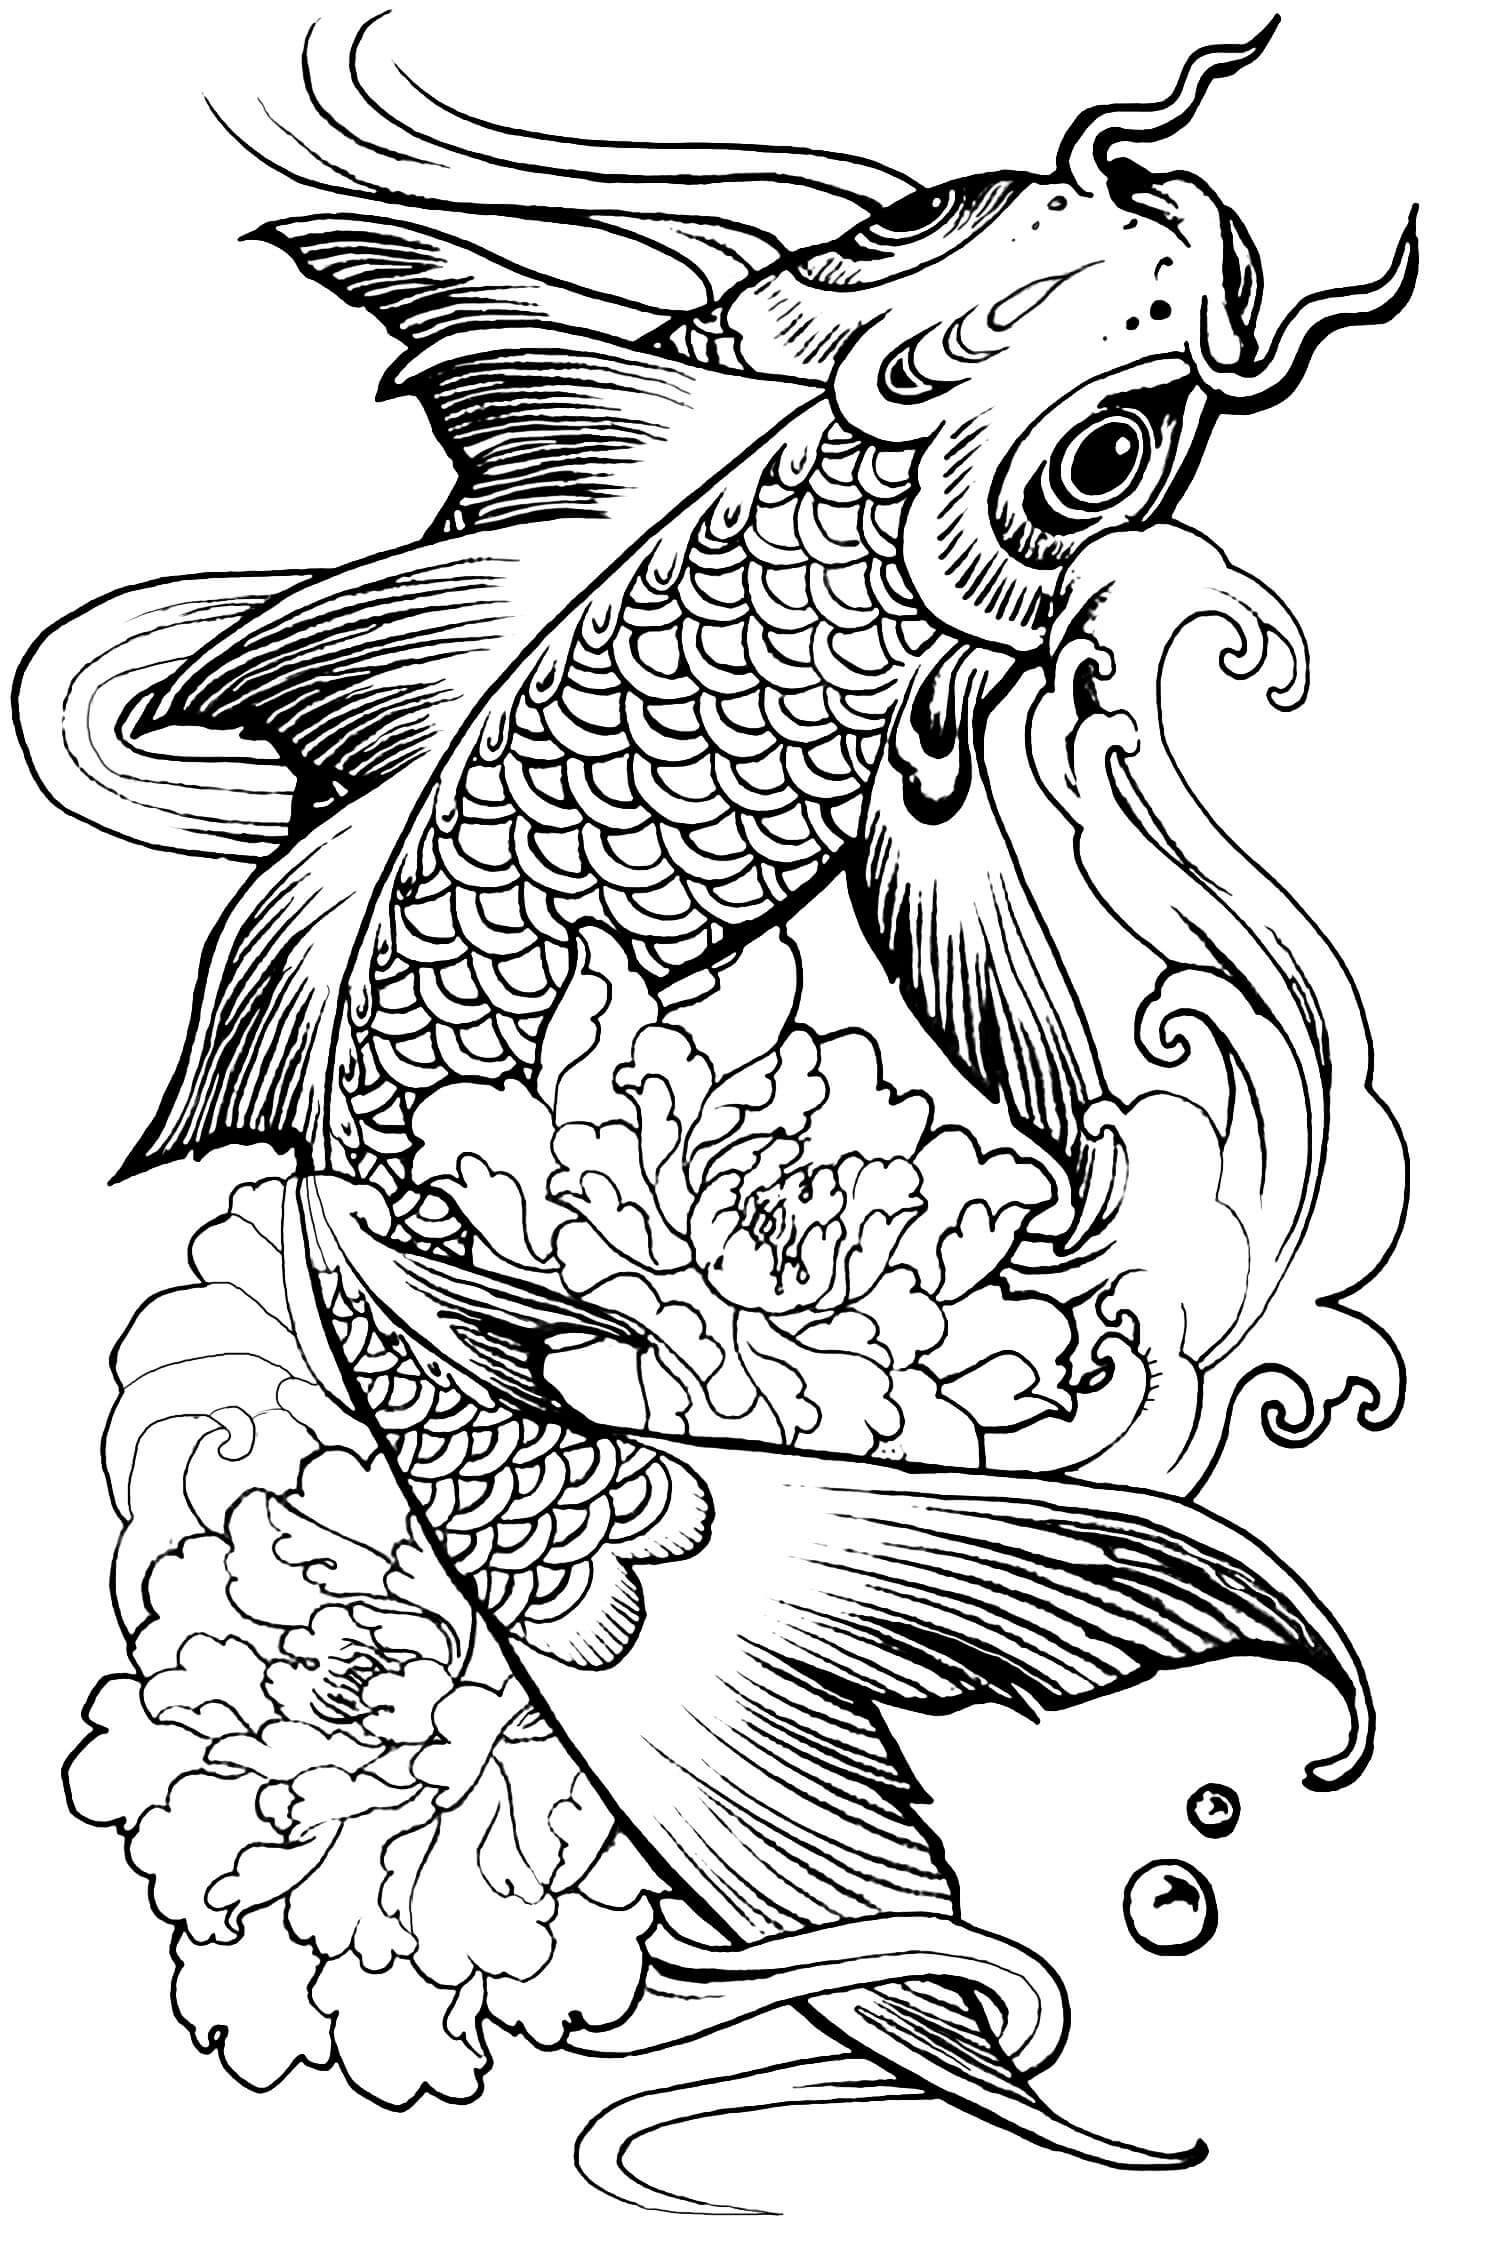 animal coloring 10 cute animals coloring pages gtgt disney coloring pages animal coloring